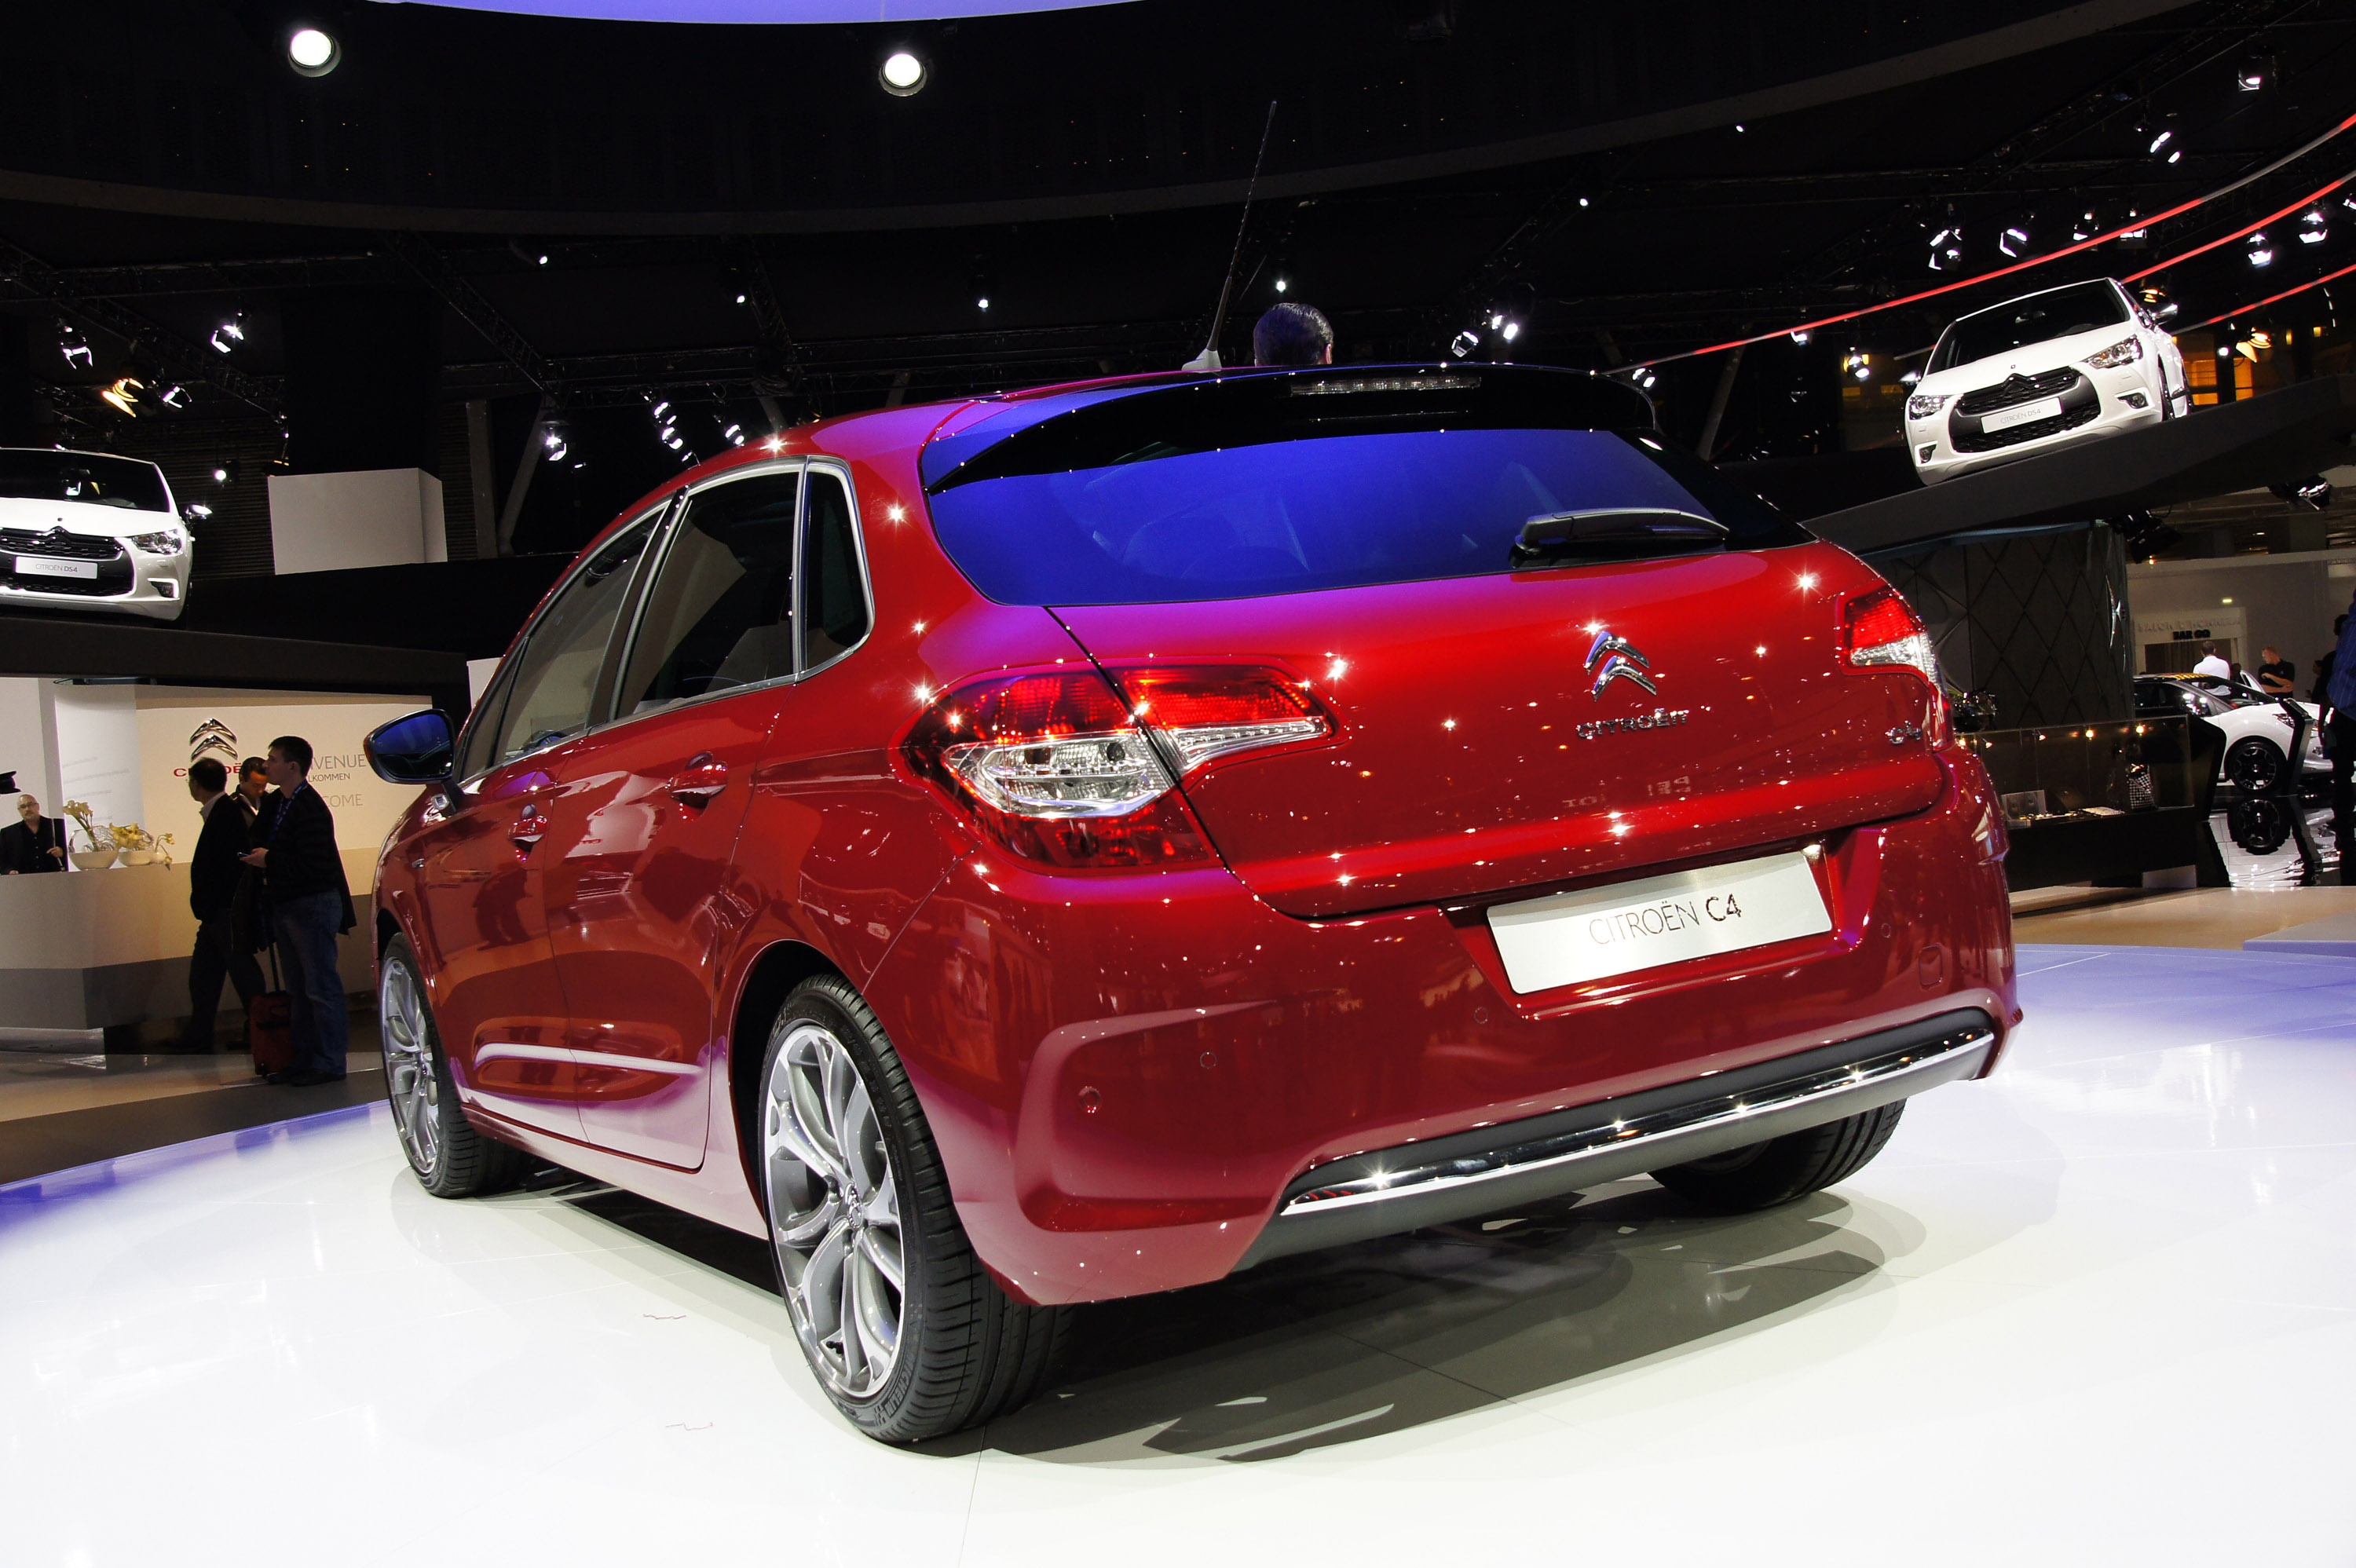 Citroen C4 Paris 2010 - Picture 43184